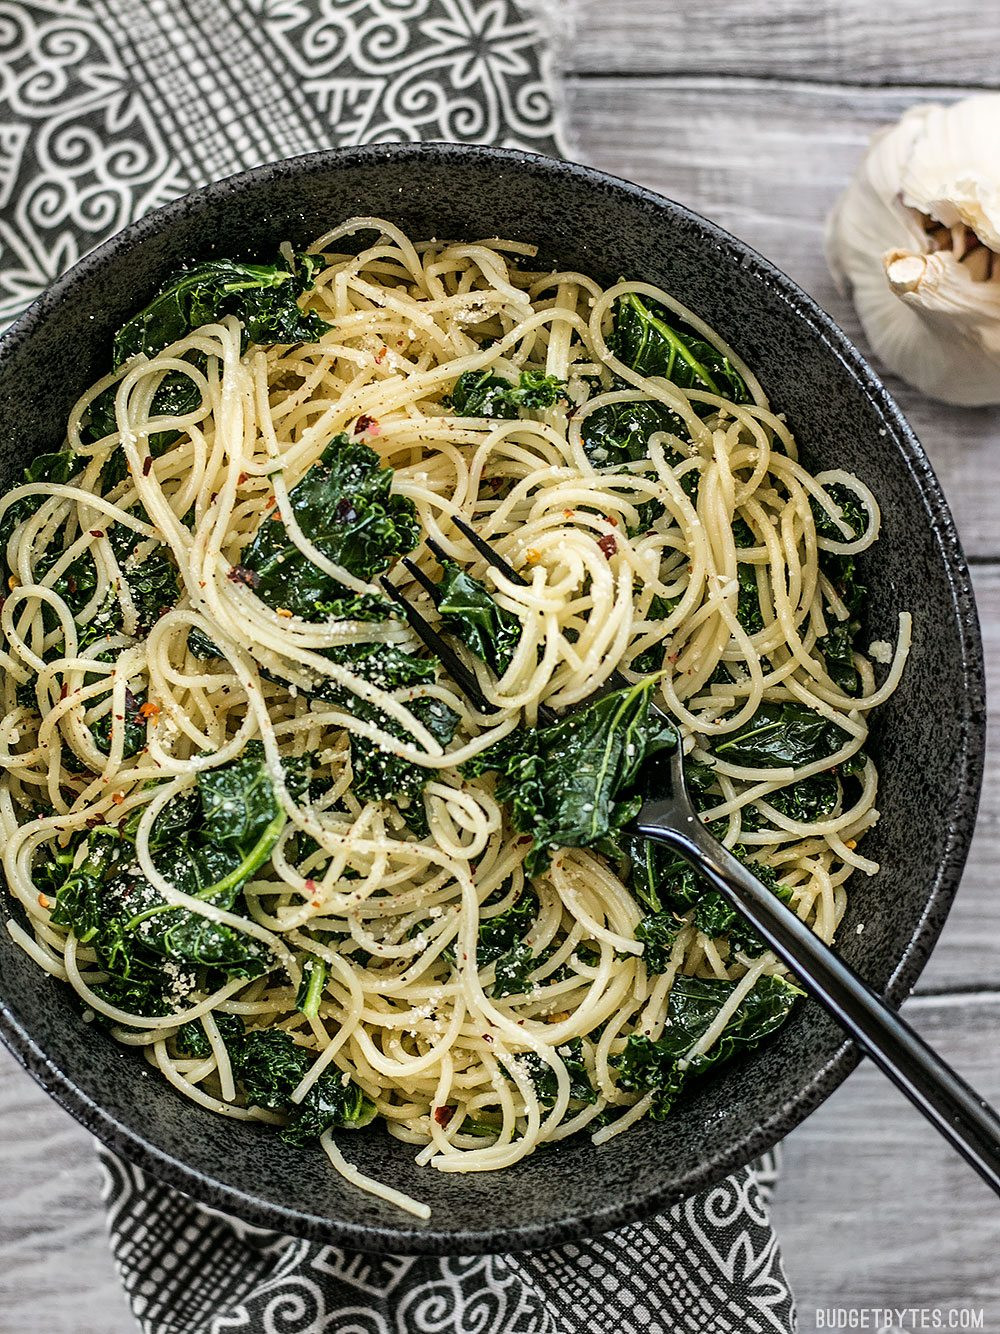 garlic Parmesan kale pasta in a bowl